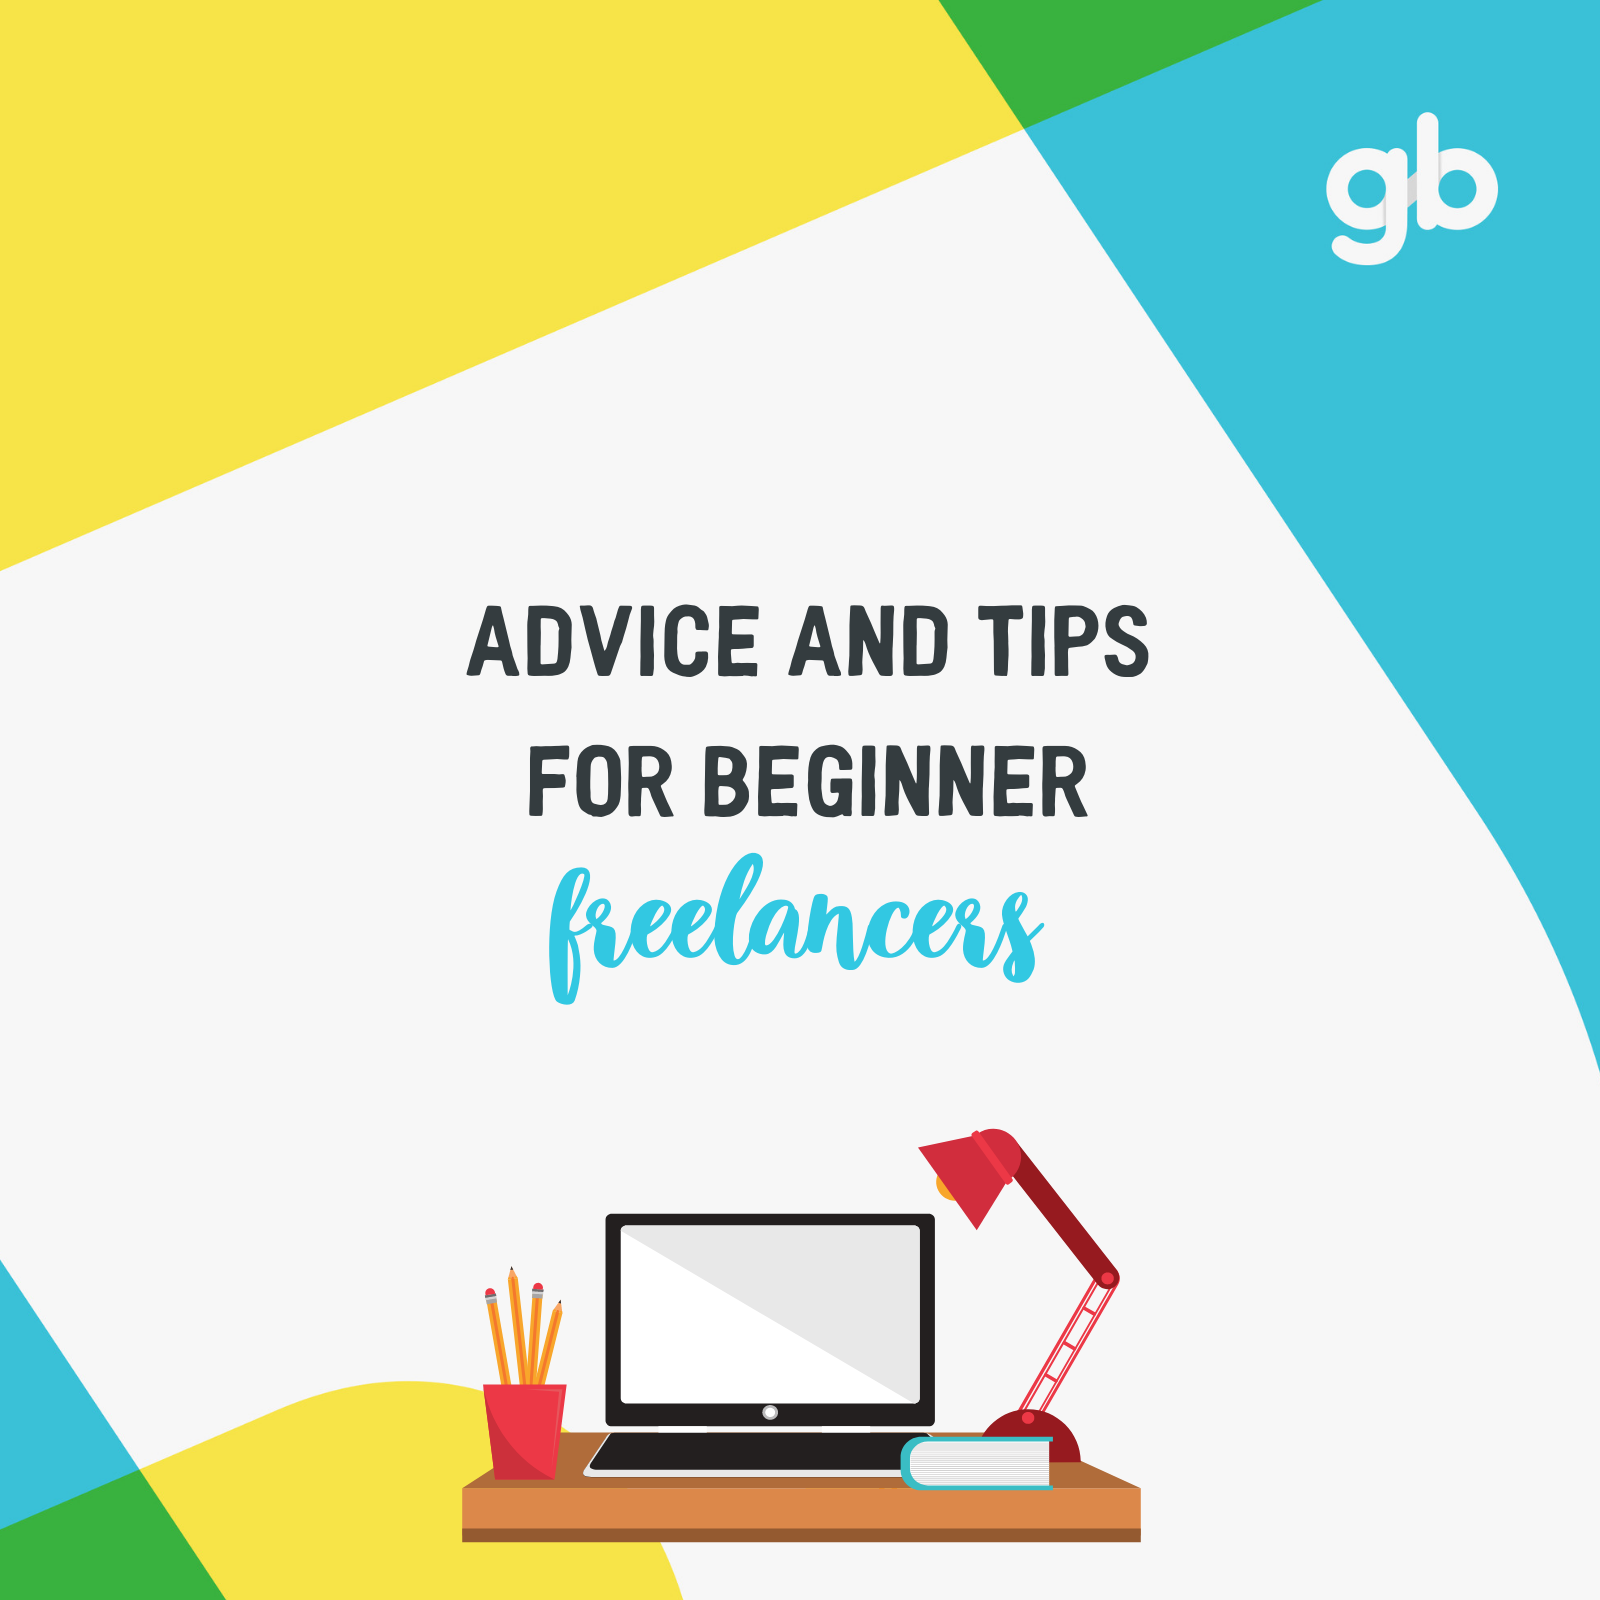 #1. Have you ever wanted to know what advice or tips veteran freelancers would give themselves if they could go back in time? Read the answers of over a dozen freelancers before you get started. -